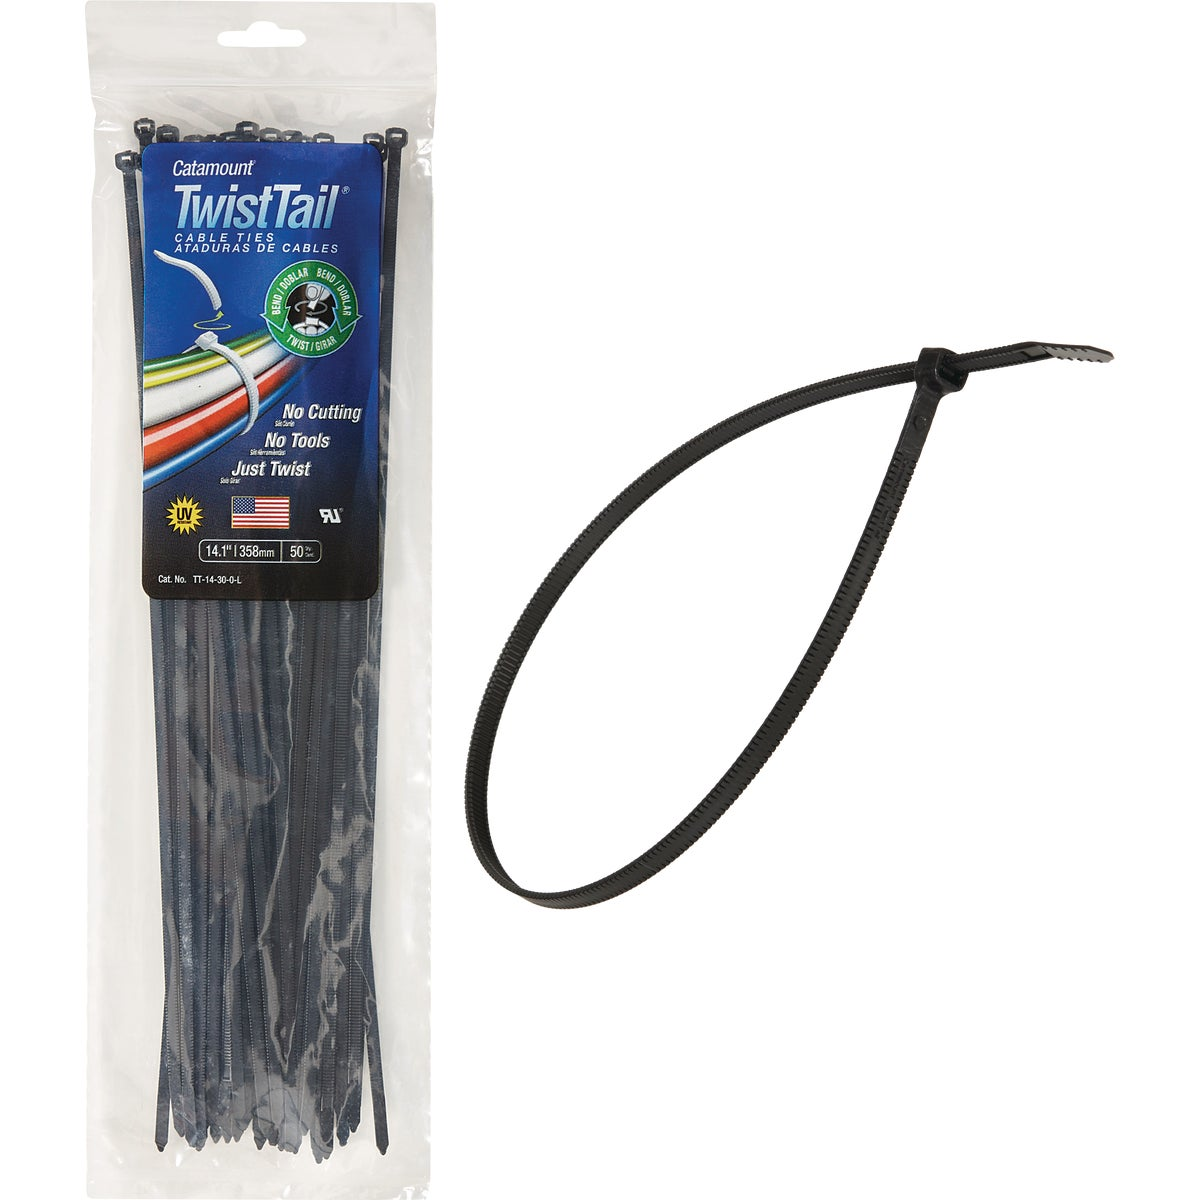 Catamount Twist Tail Cable Tie